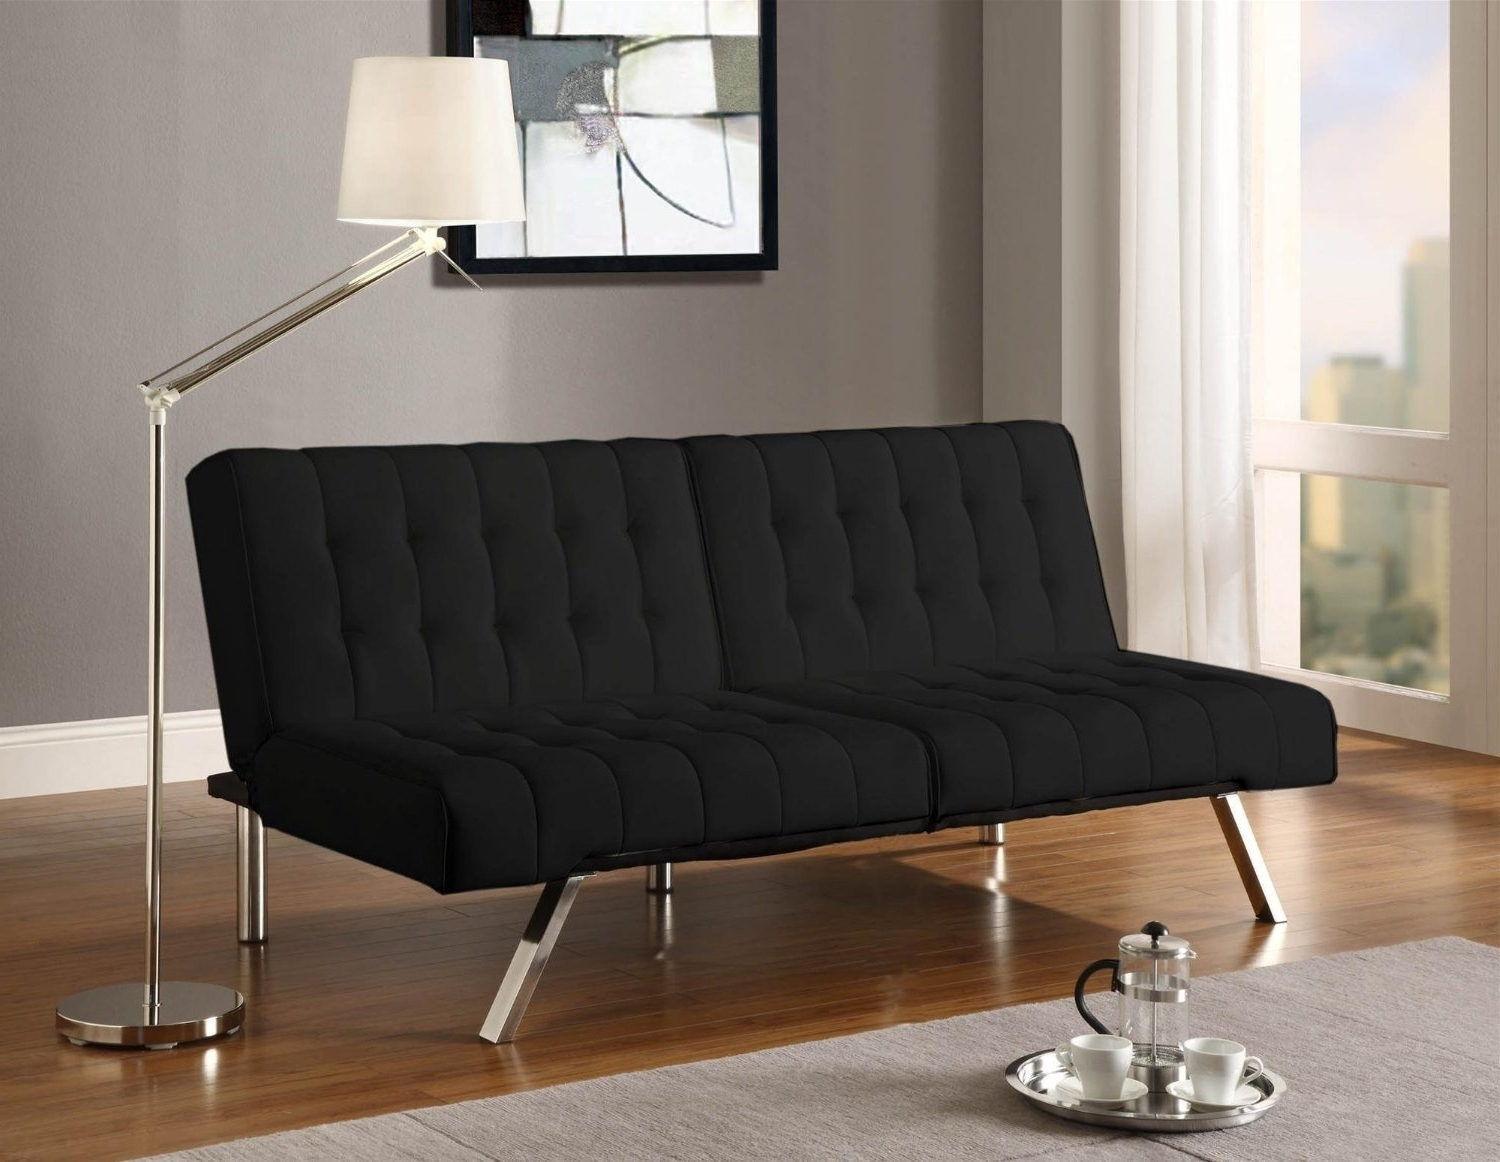 Emily Futon Chaise Loungers With Regard To 2017 Amazon: Emily Futon With Chaise Lounger Super Bonus Set Black (View 13 of 15)